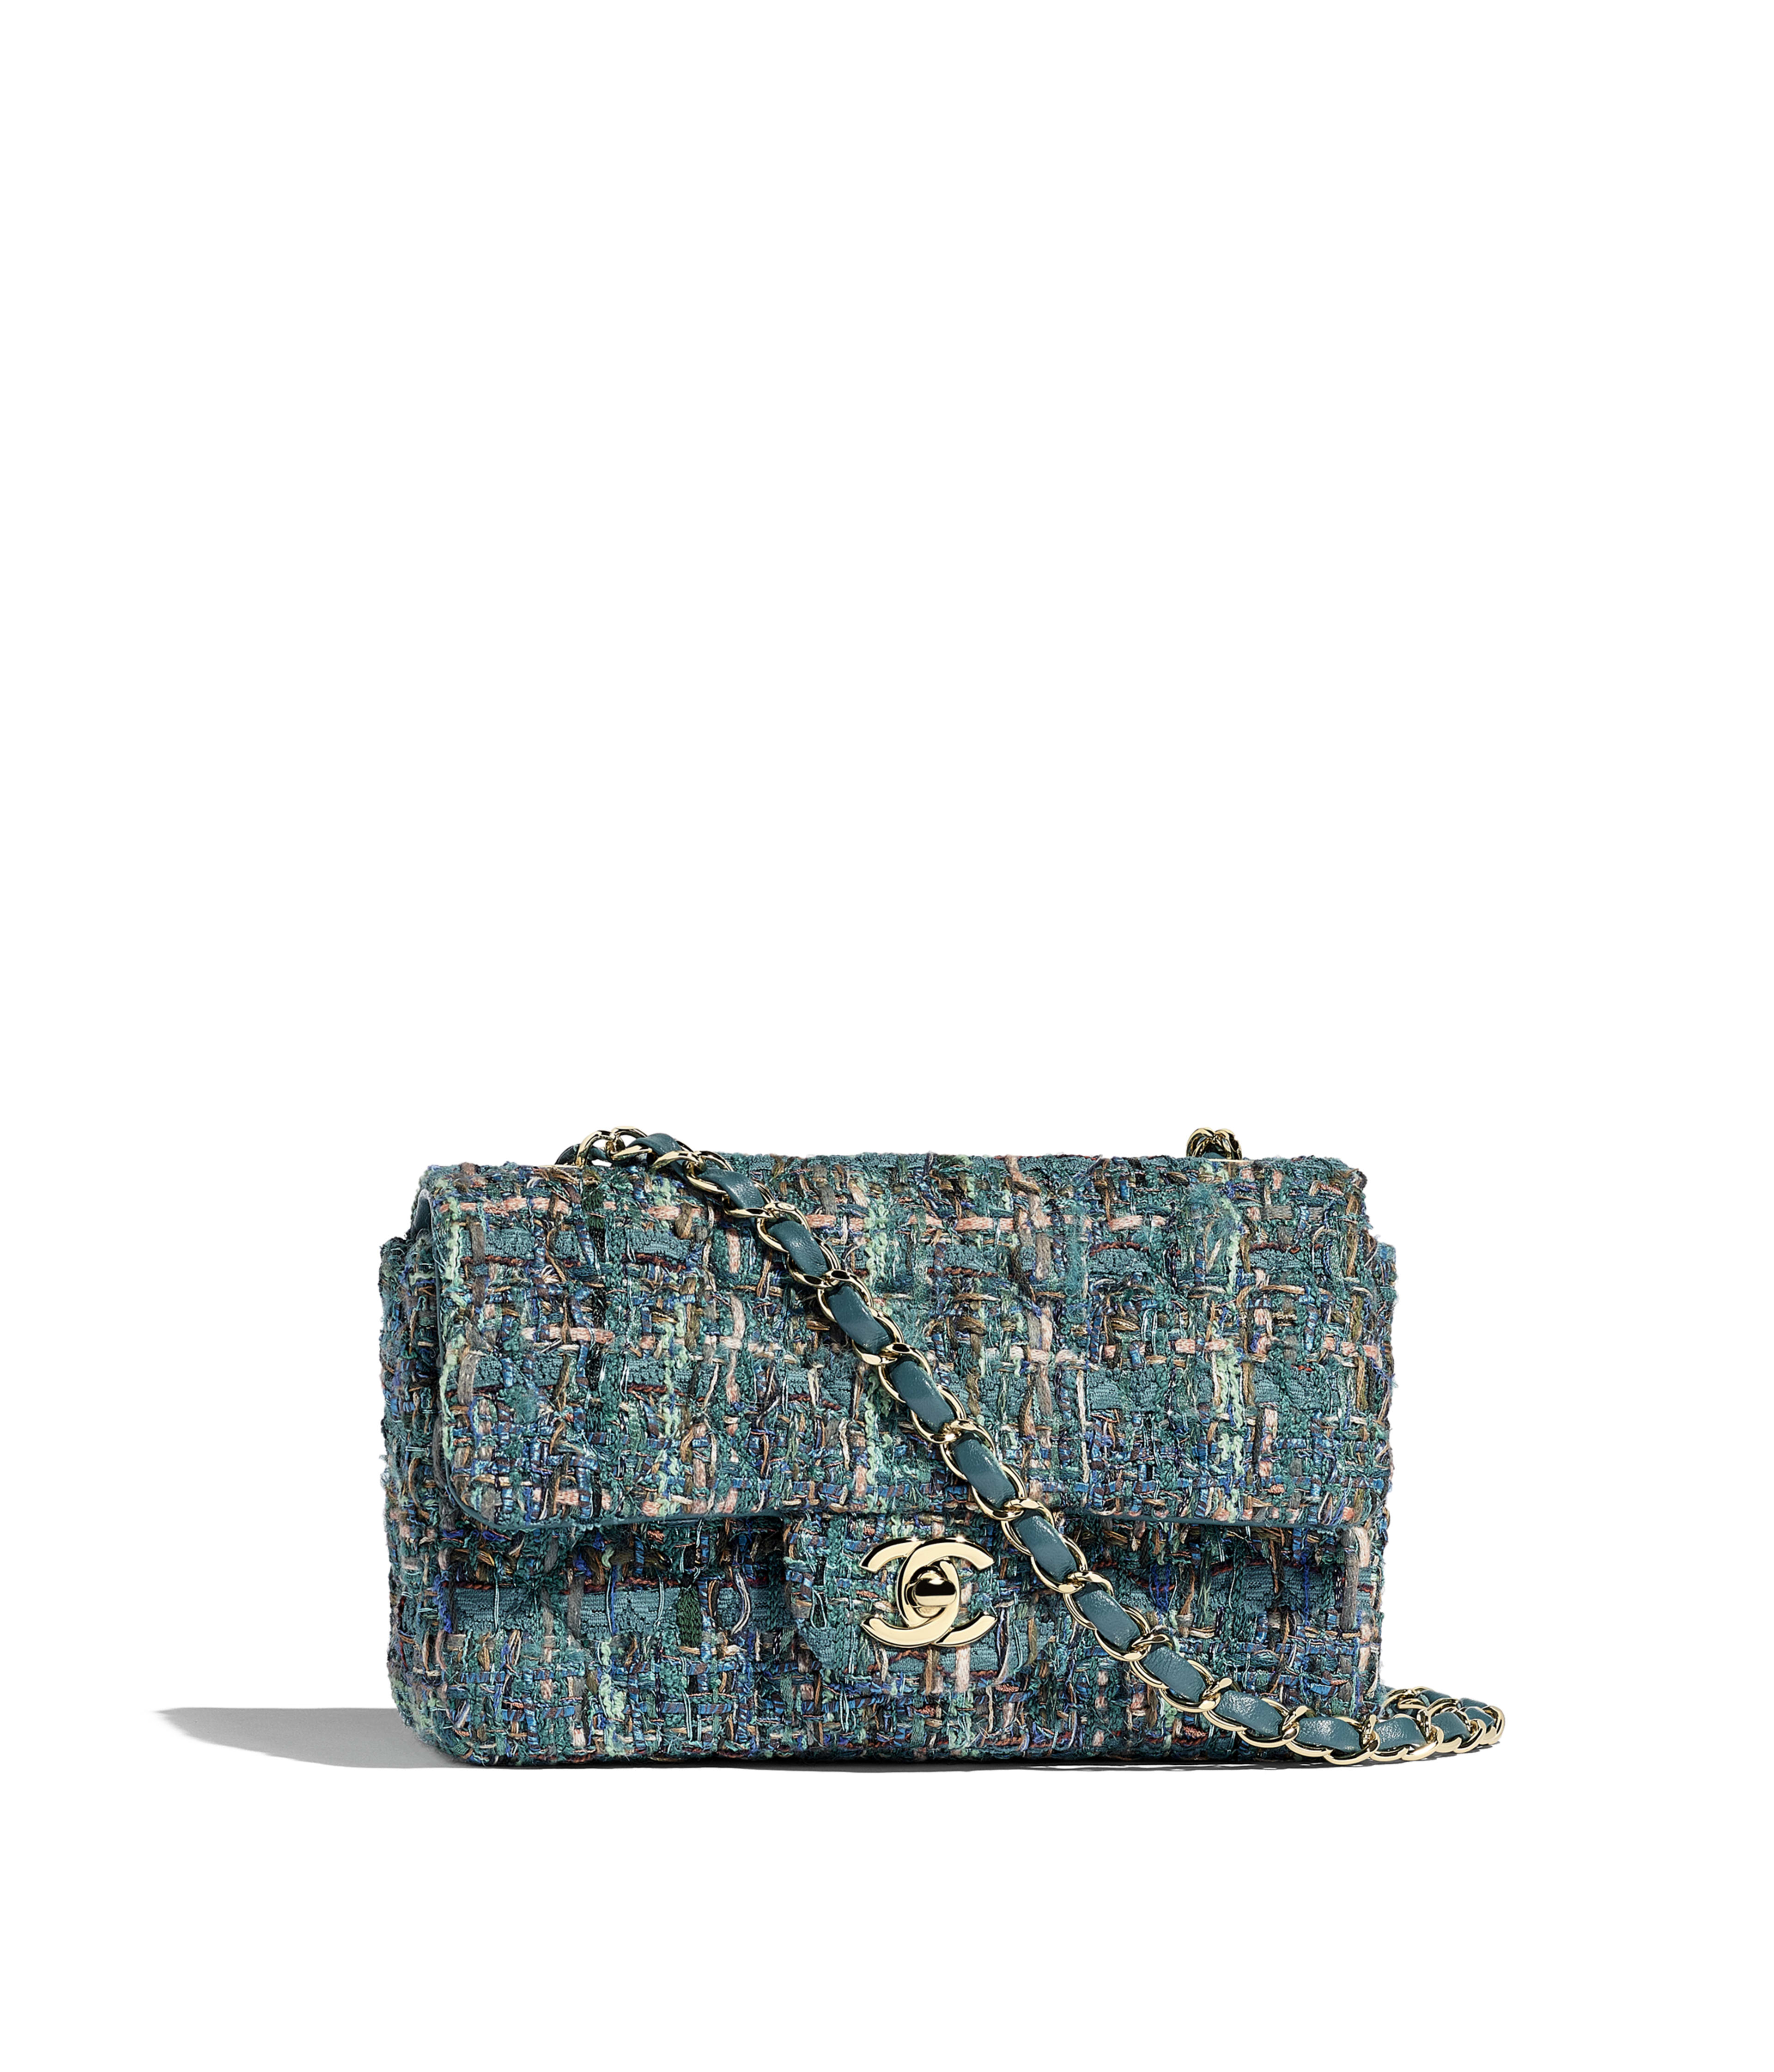 b8b7619b1f3e94 Mini Flap Bag Tweed & Gold-Tone Metal, Turquoise Ref. A69900B00969MG483